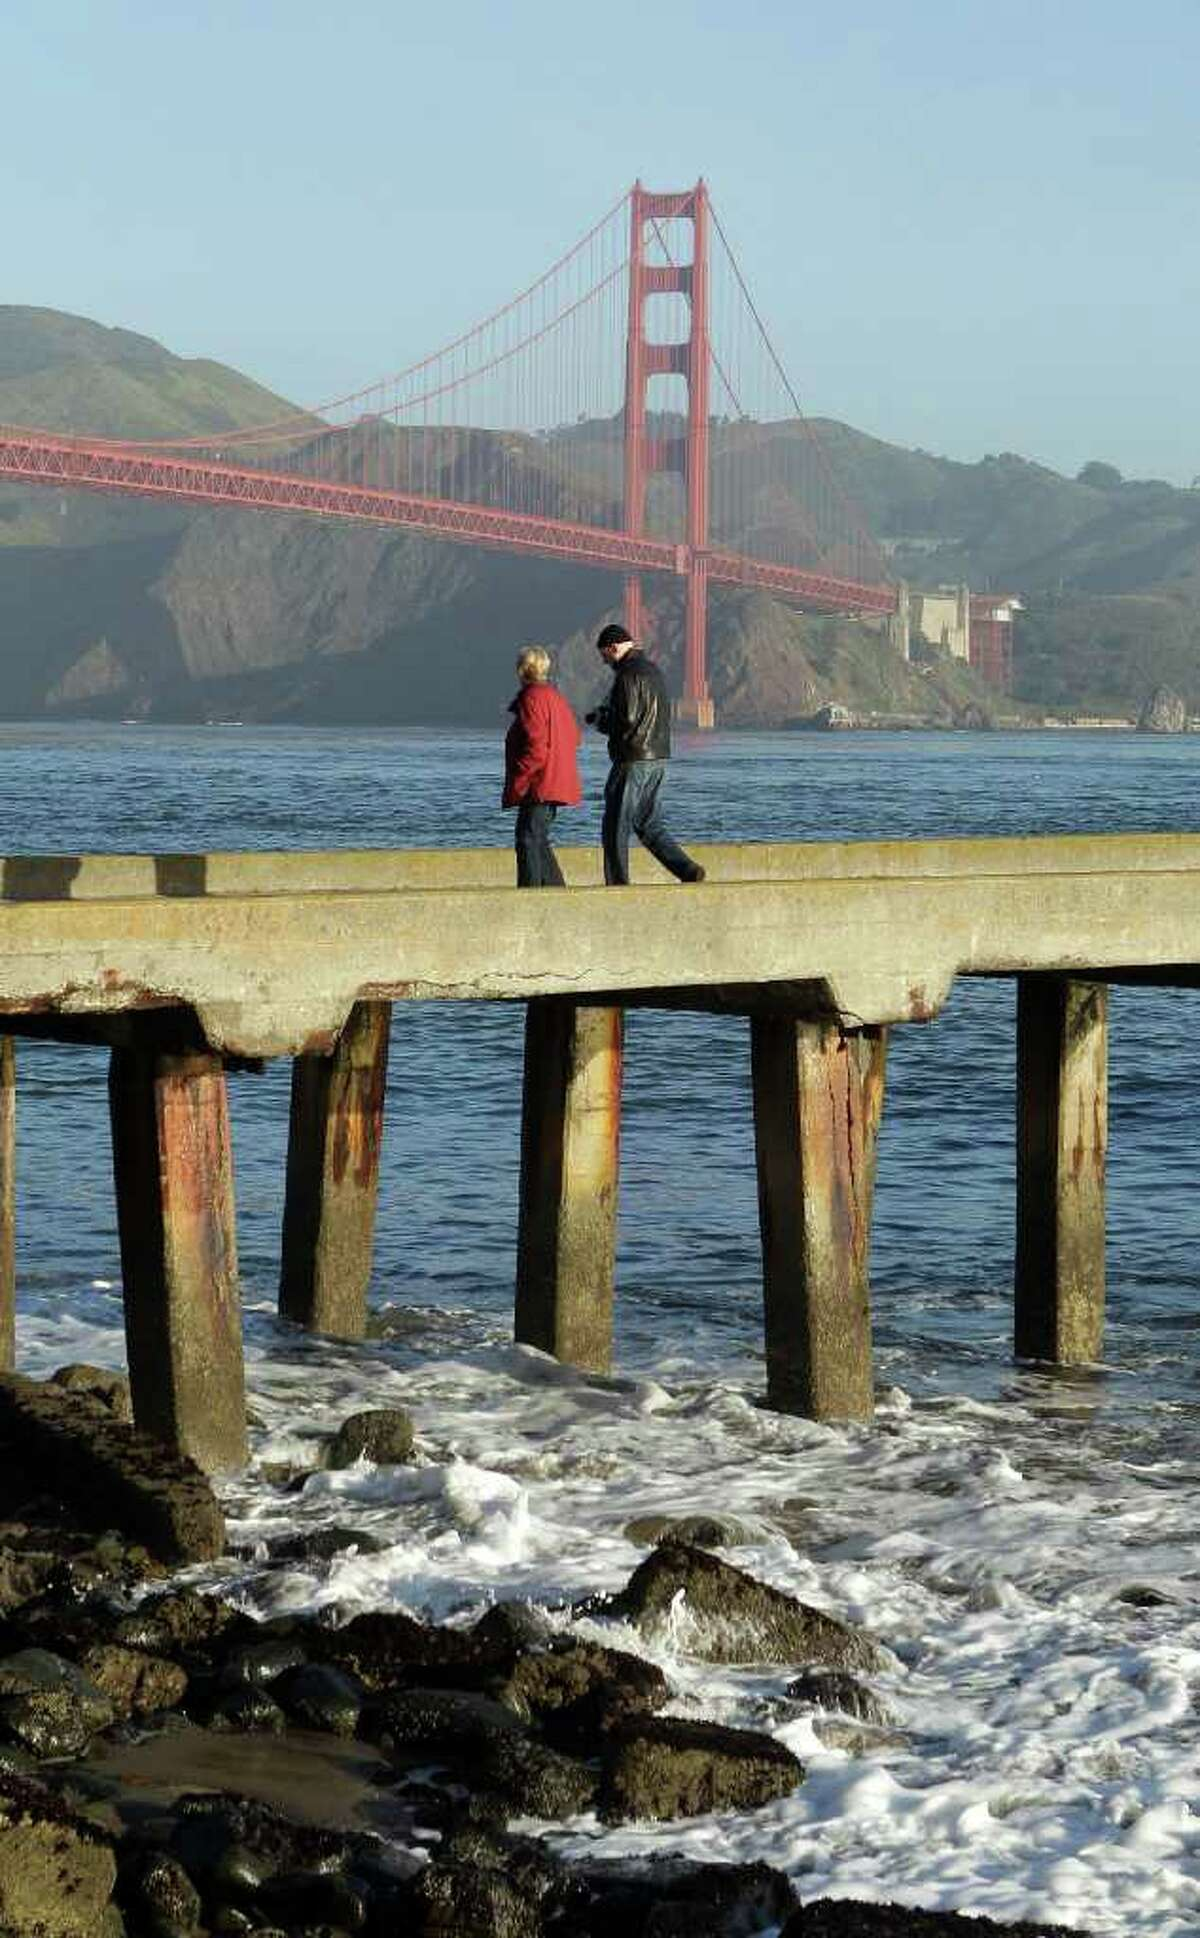 With a tsunami warning in effect for Northern California, a man and woman walk along a pier at Fort Point near the Golden Gate Bridge in San Francisco on Friday, March 11, 2011. The warnings came after a 8.9-magnitude earthquake and a tsunami struck Japan. (AP Photo/Jeff Chiu)